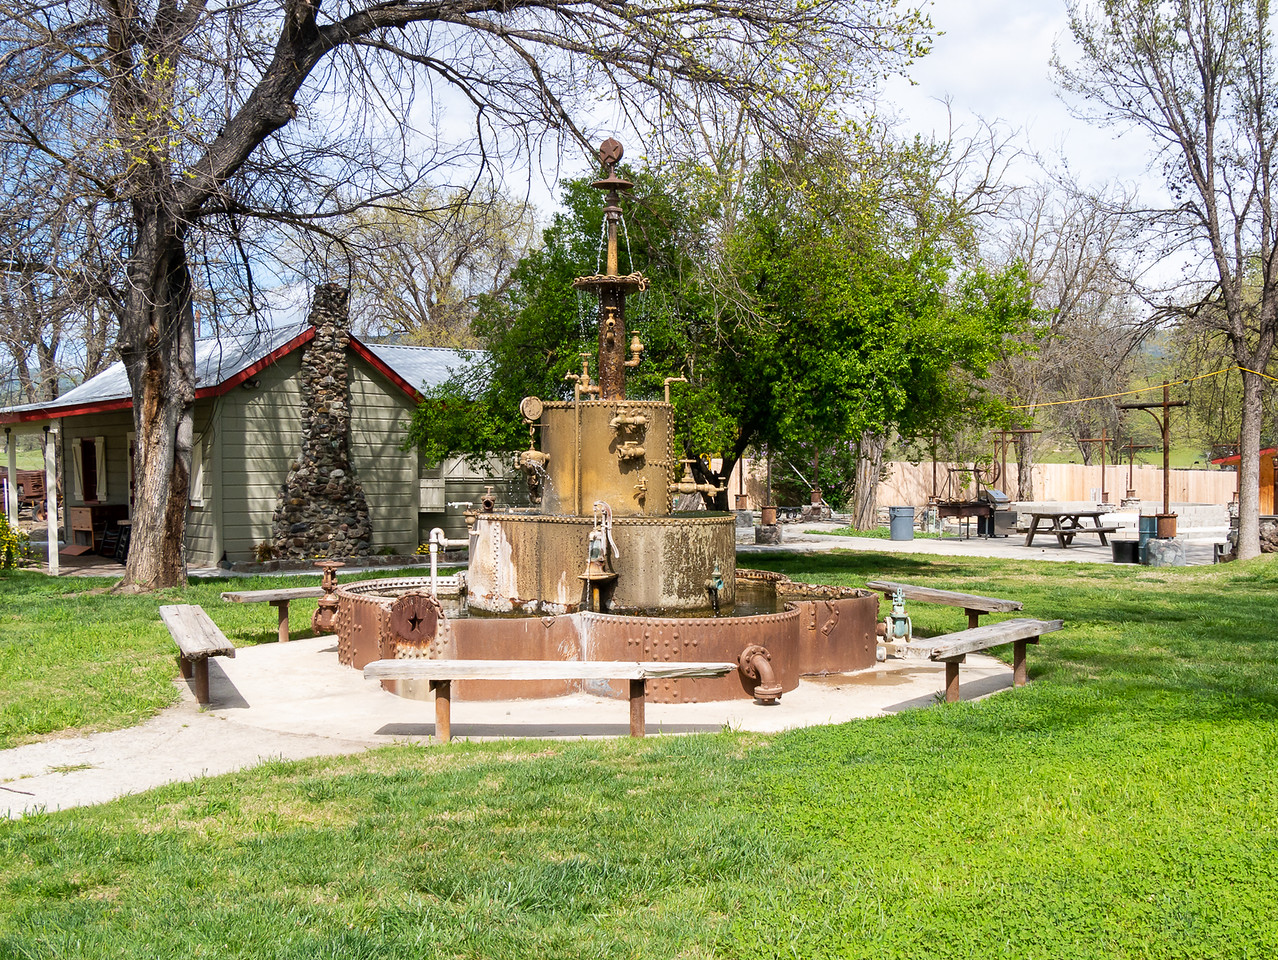 """Across the street from the cafe, next to the associated motel, is a park with this thing.  The sign by the star says """"Parkfield Water Company""""."""